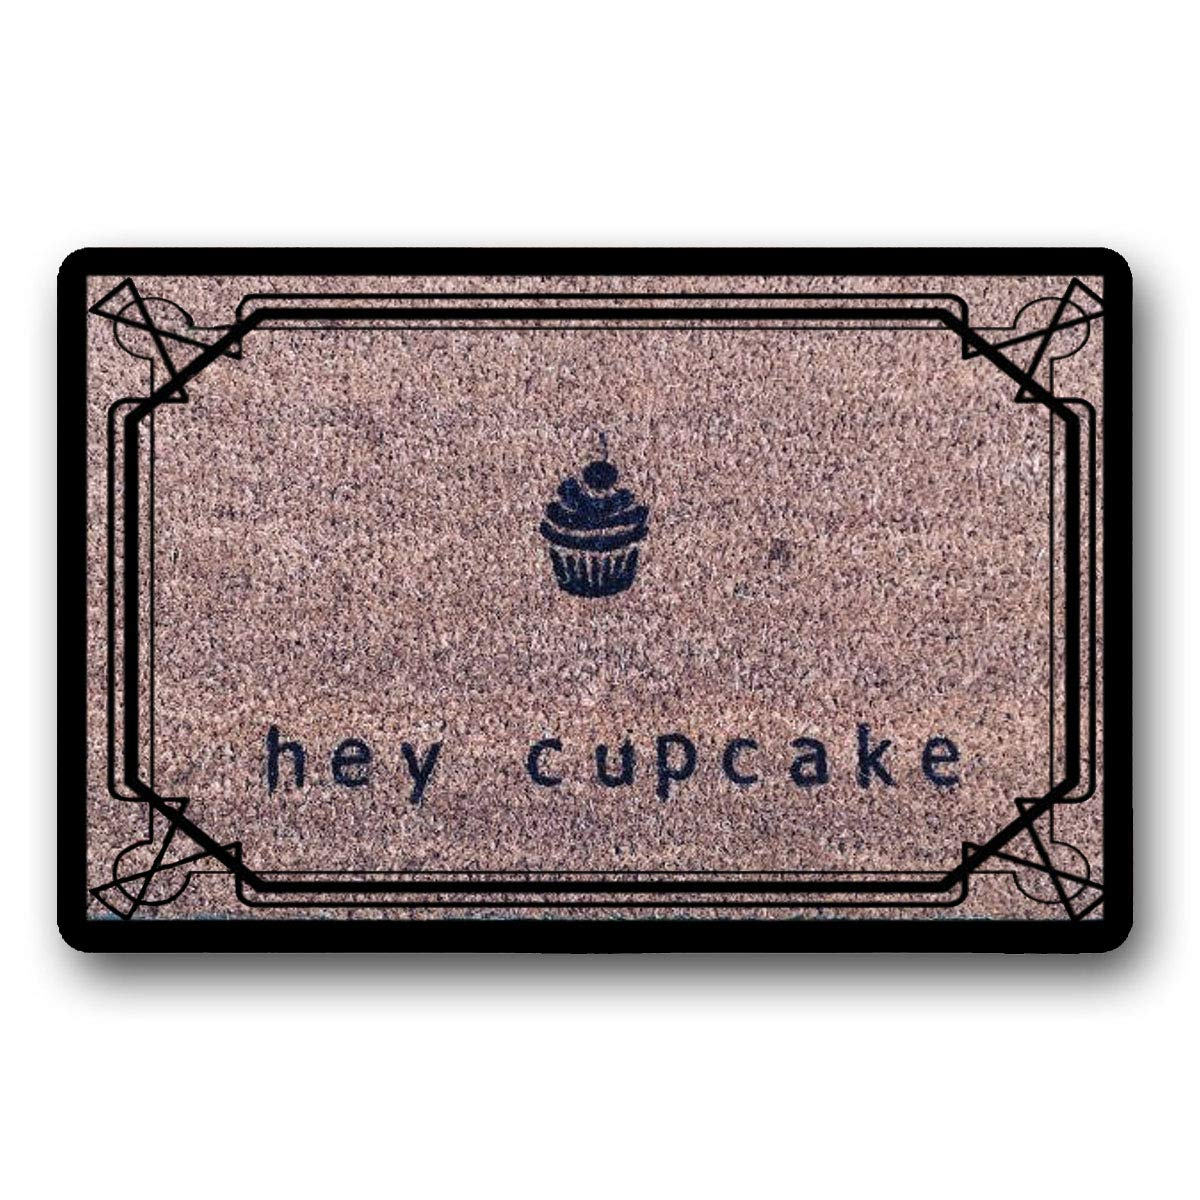 LSS Trading Hey Cupcake Doormat 23.6'' x 15.7'' by LSS Trading